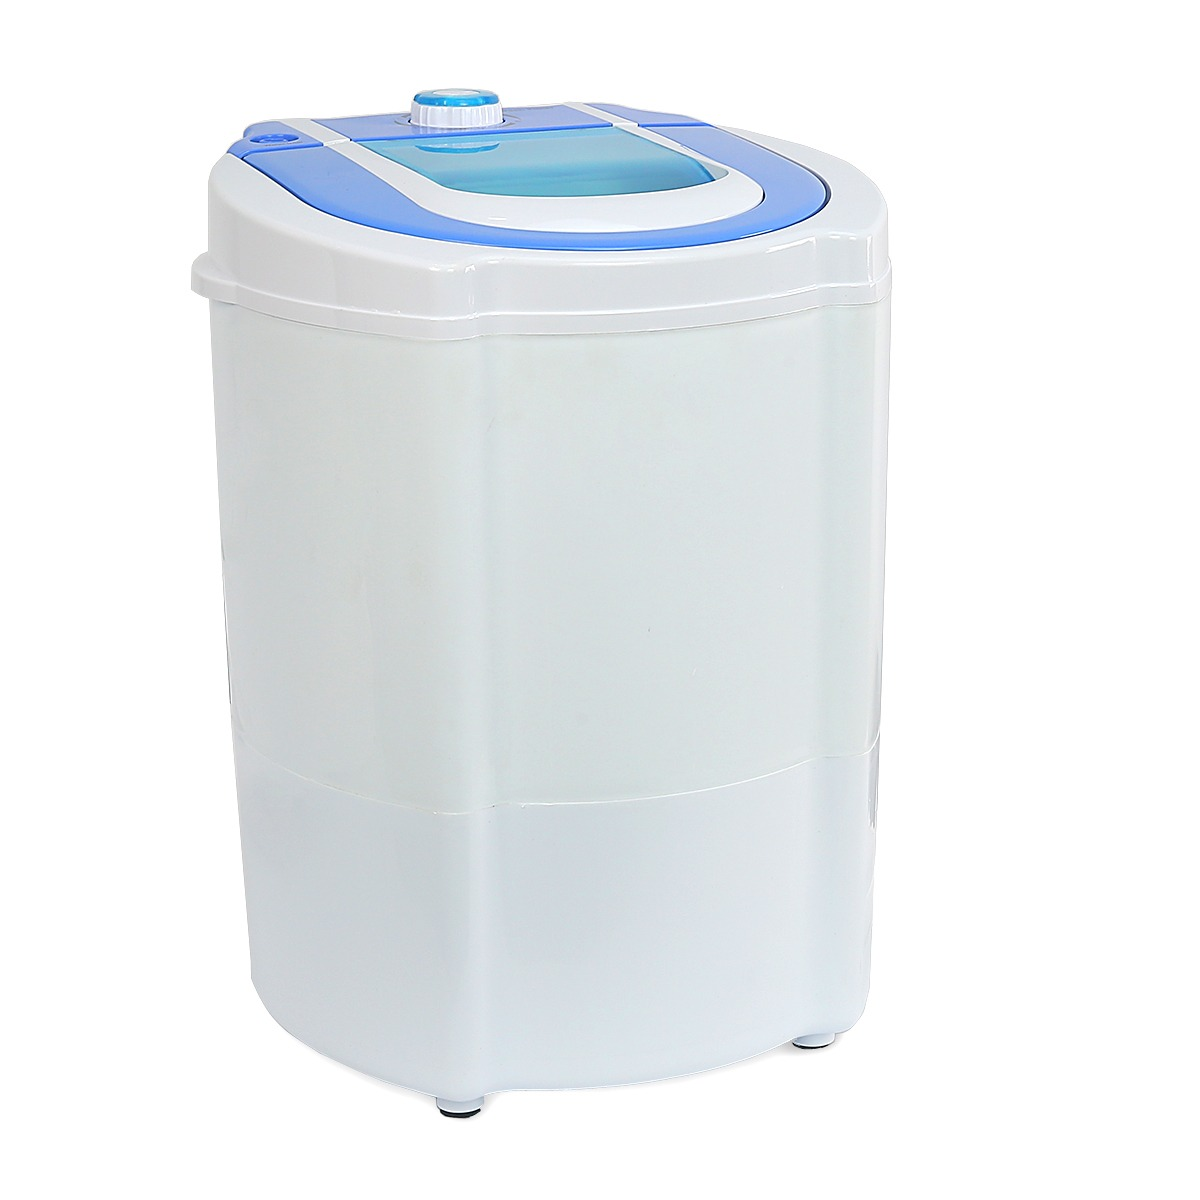 6LB MINI Portable Washer Compact Electric Laundry Washer, With Hose